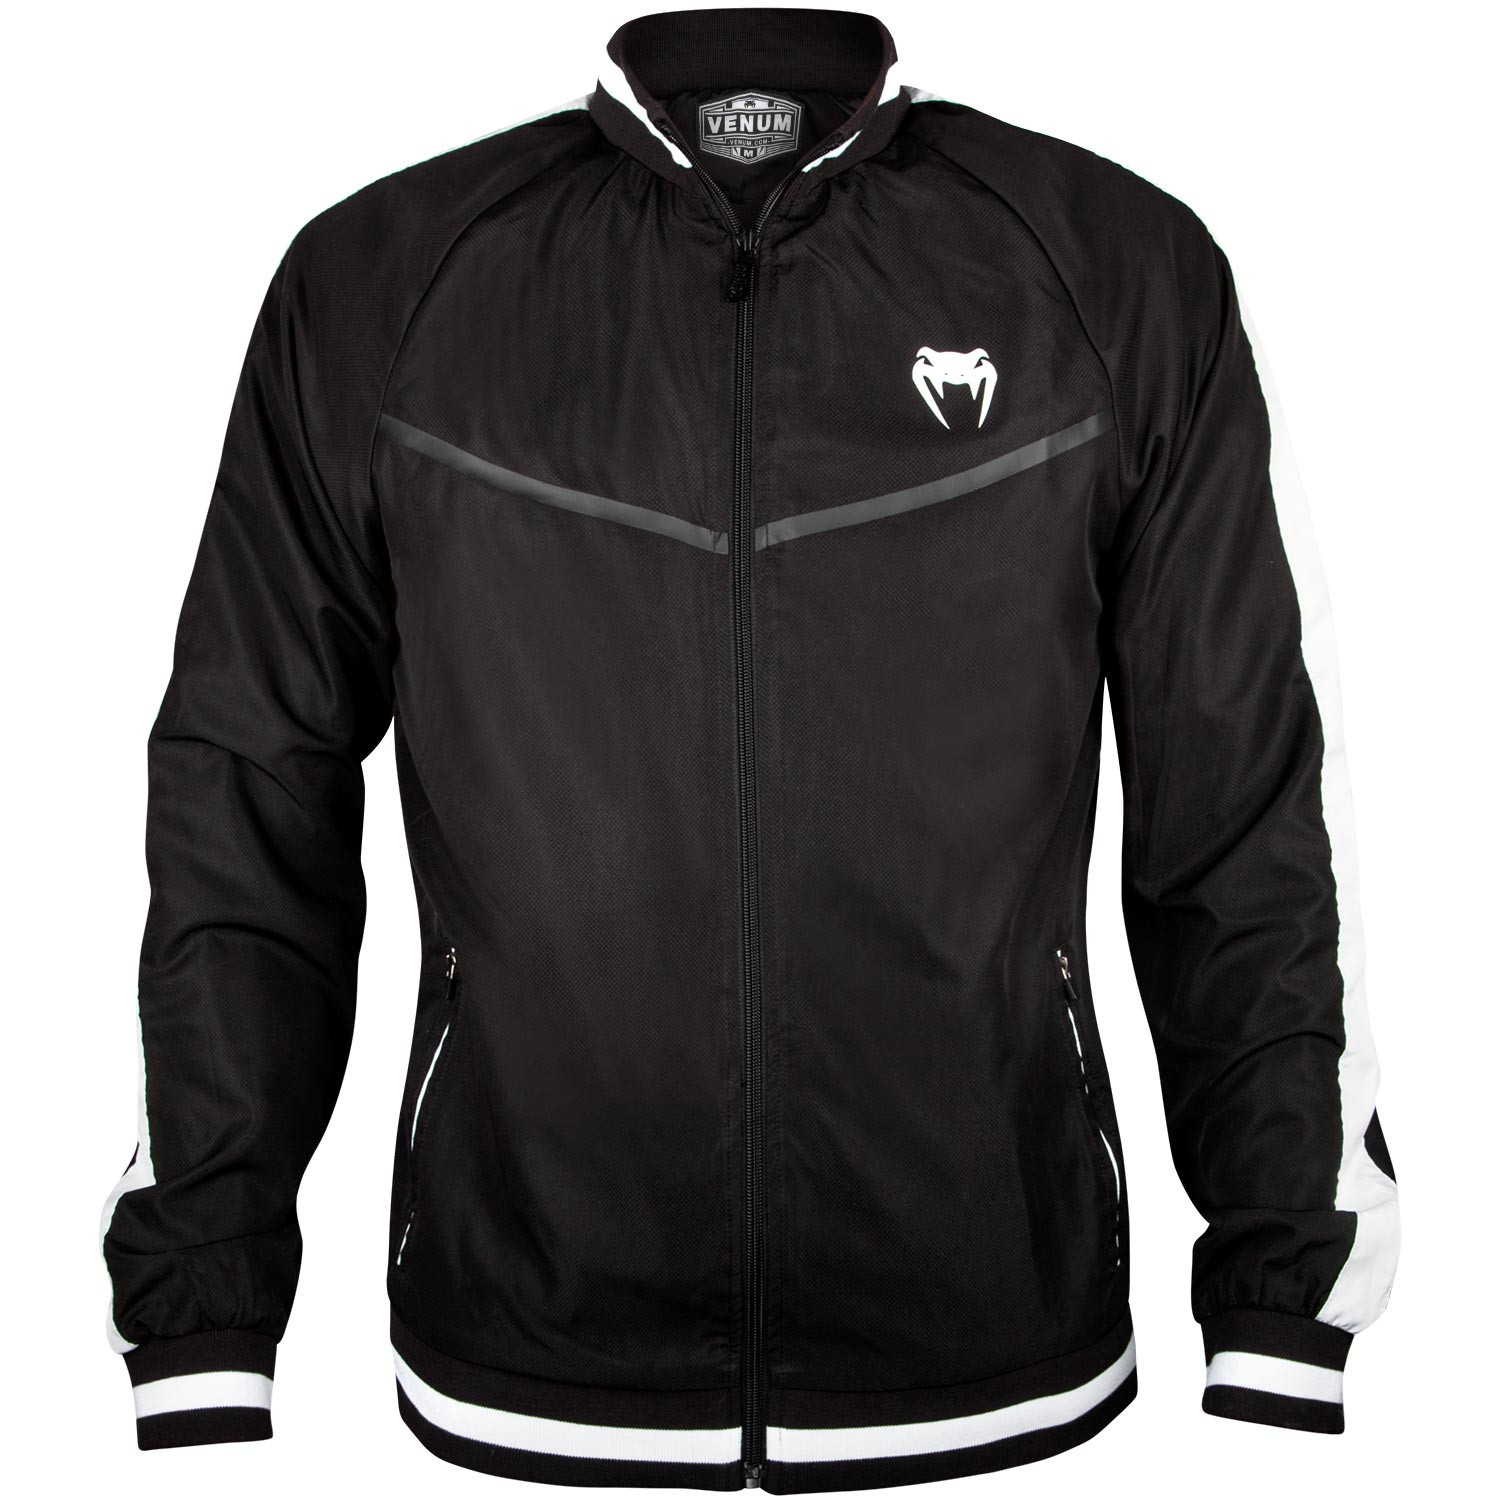 Купить Олимпийка Venum Club Track Jacket - Black, 5257_bk